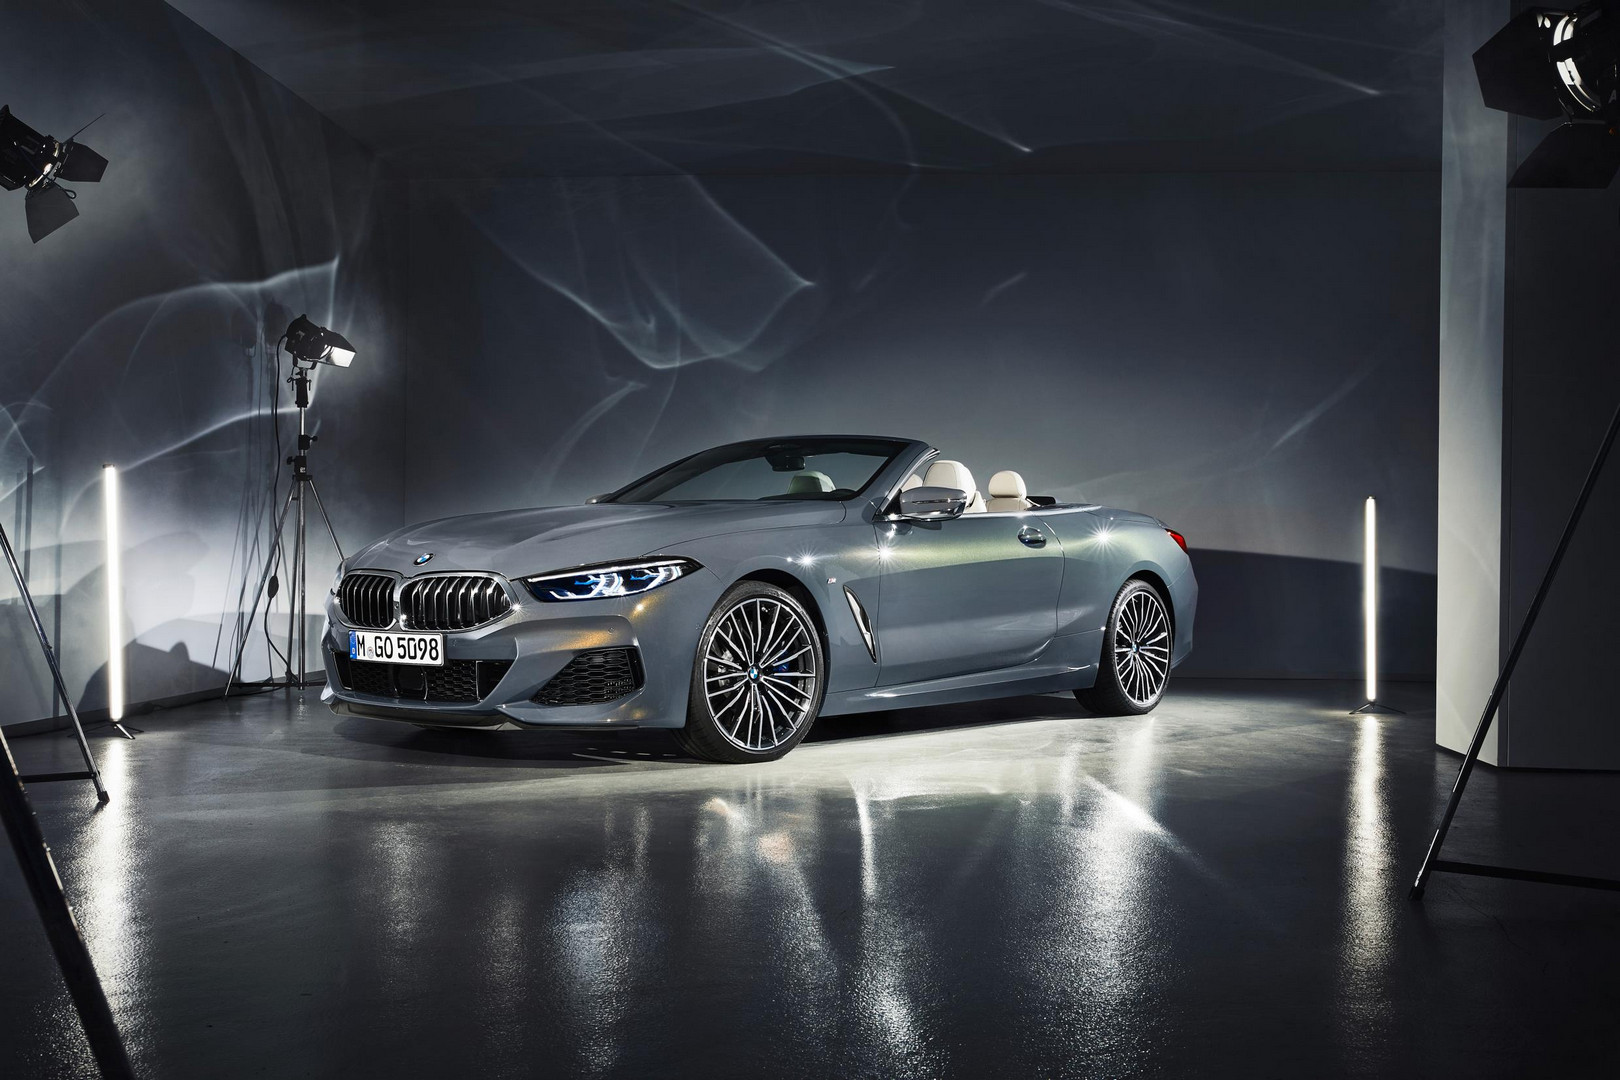 2019 BMW 8 Series Convertible Officially Revealed